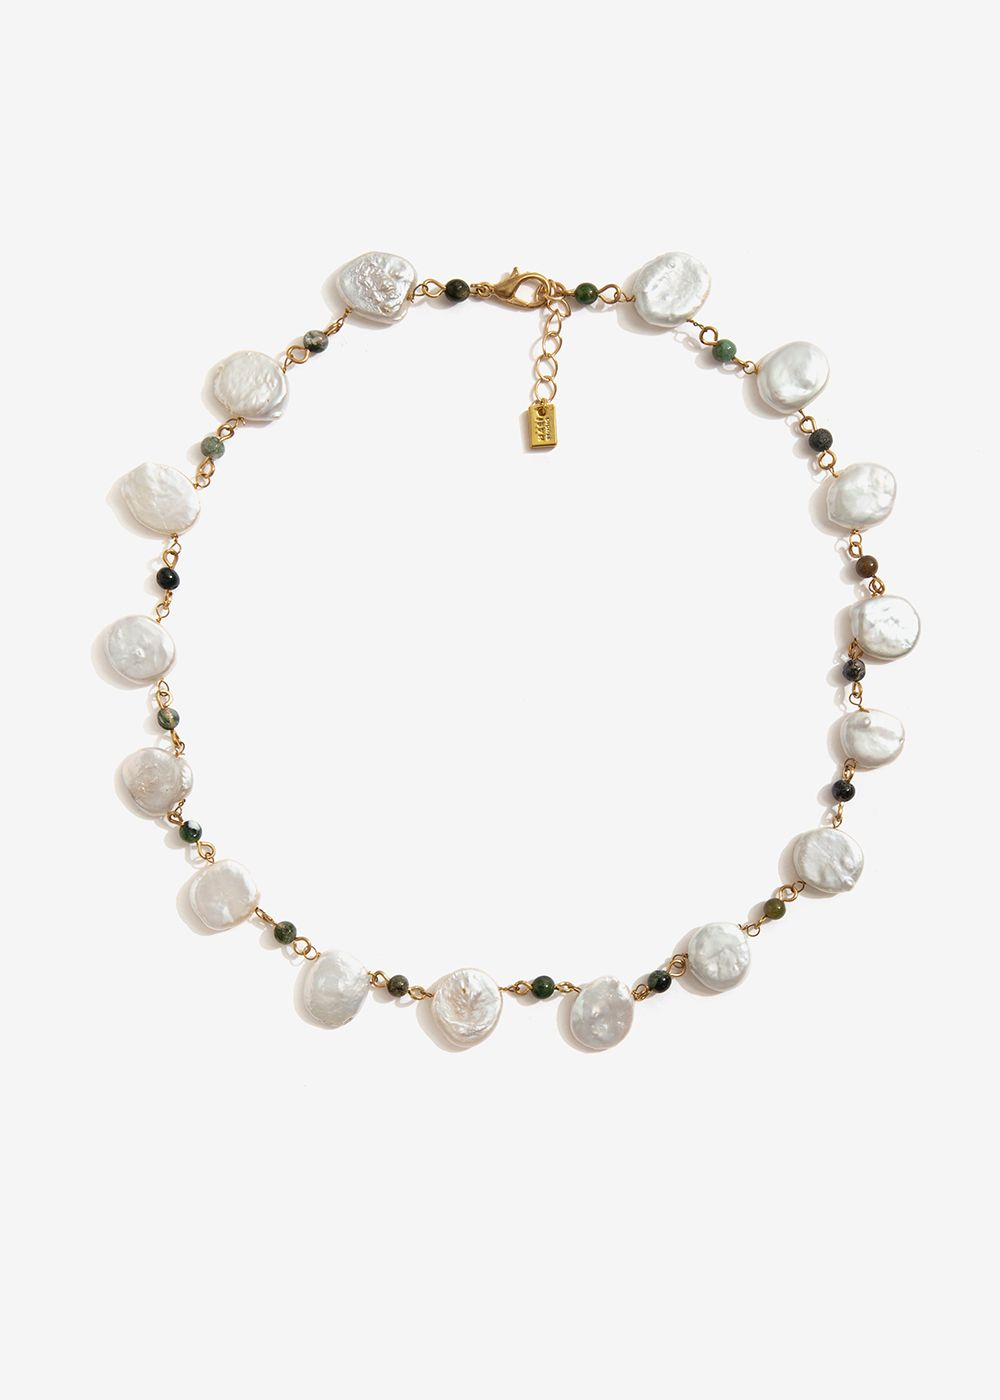 SHORT NECKLACE WITH NATURAL PEARLS AND STONES